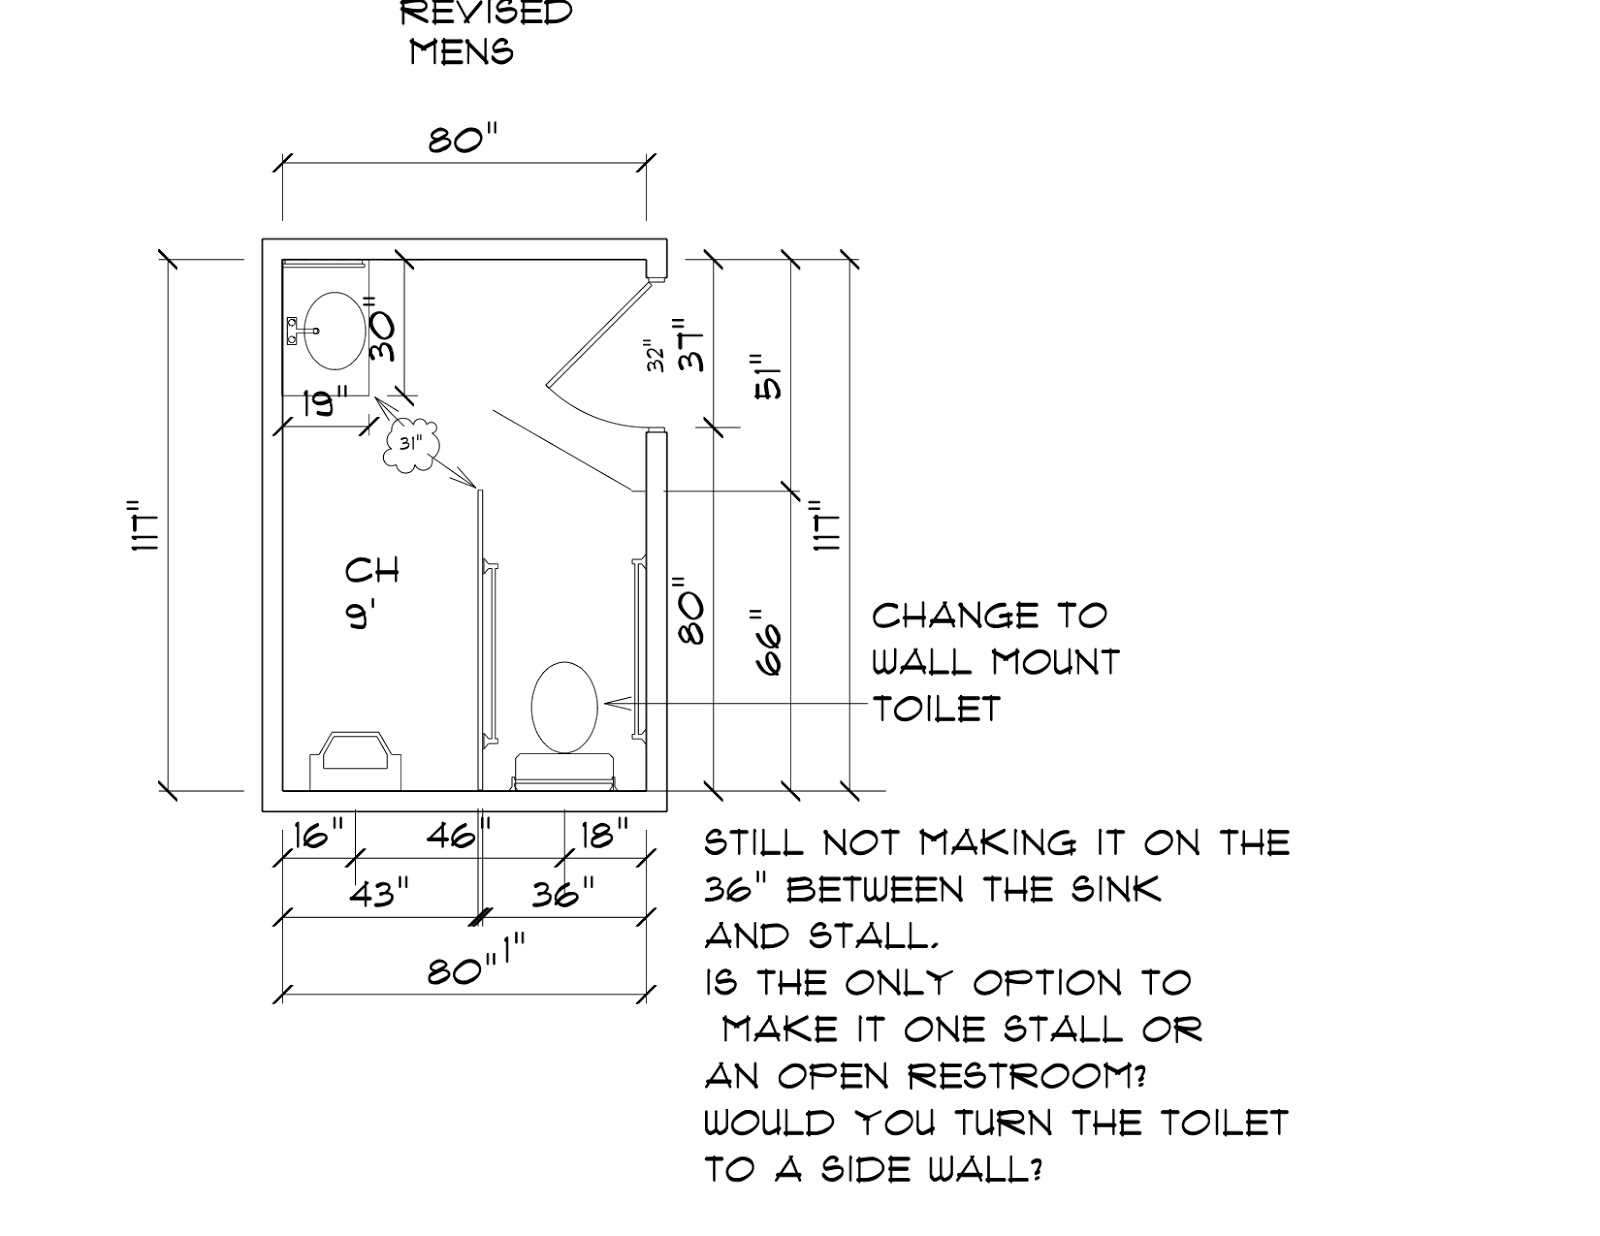 Ada Redesigning A Public Men 39 S Bathroom Based On Ada